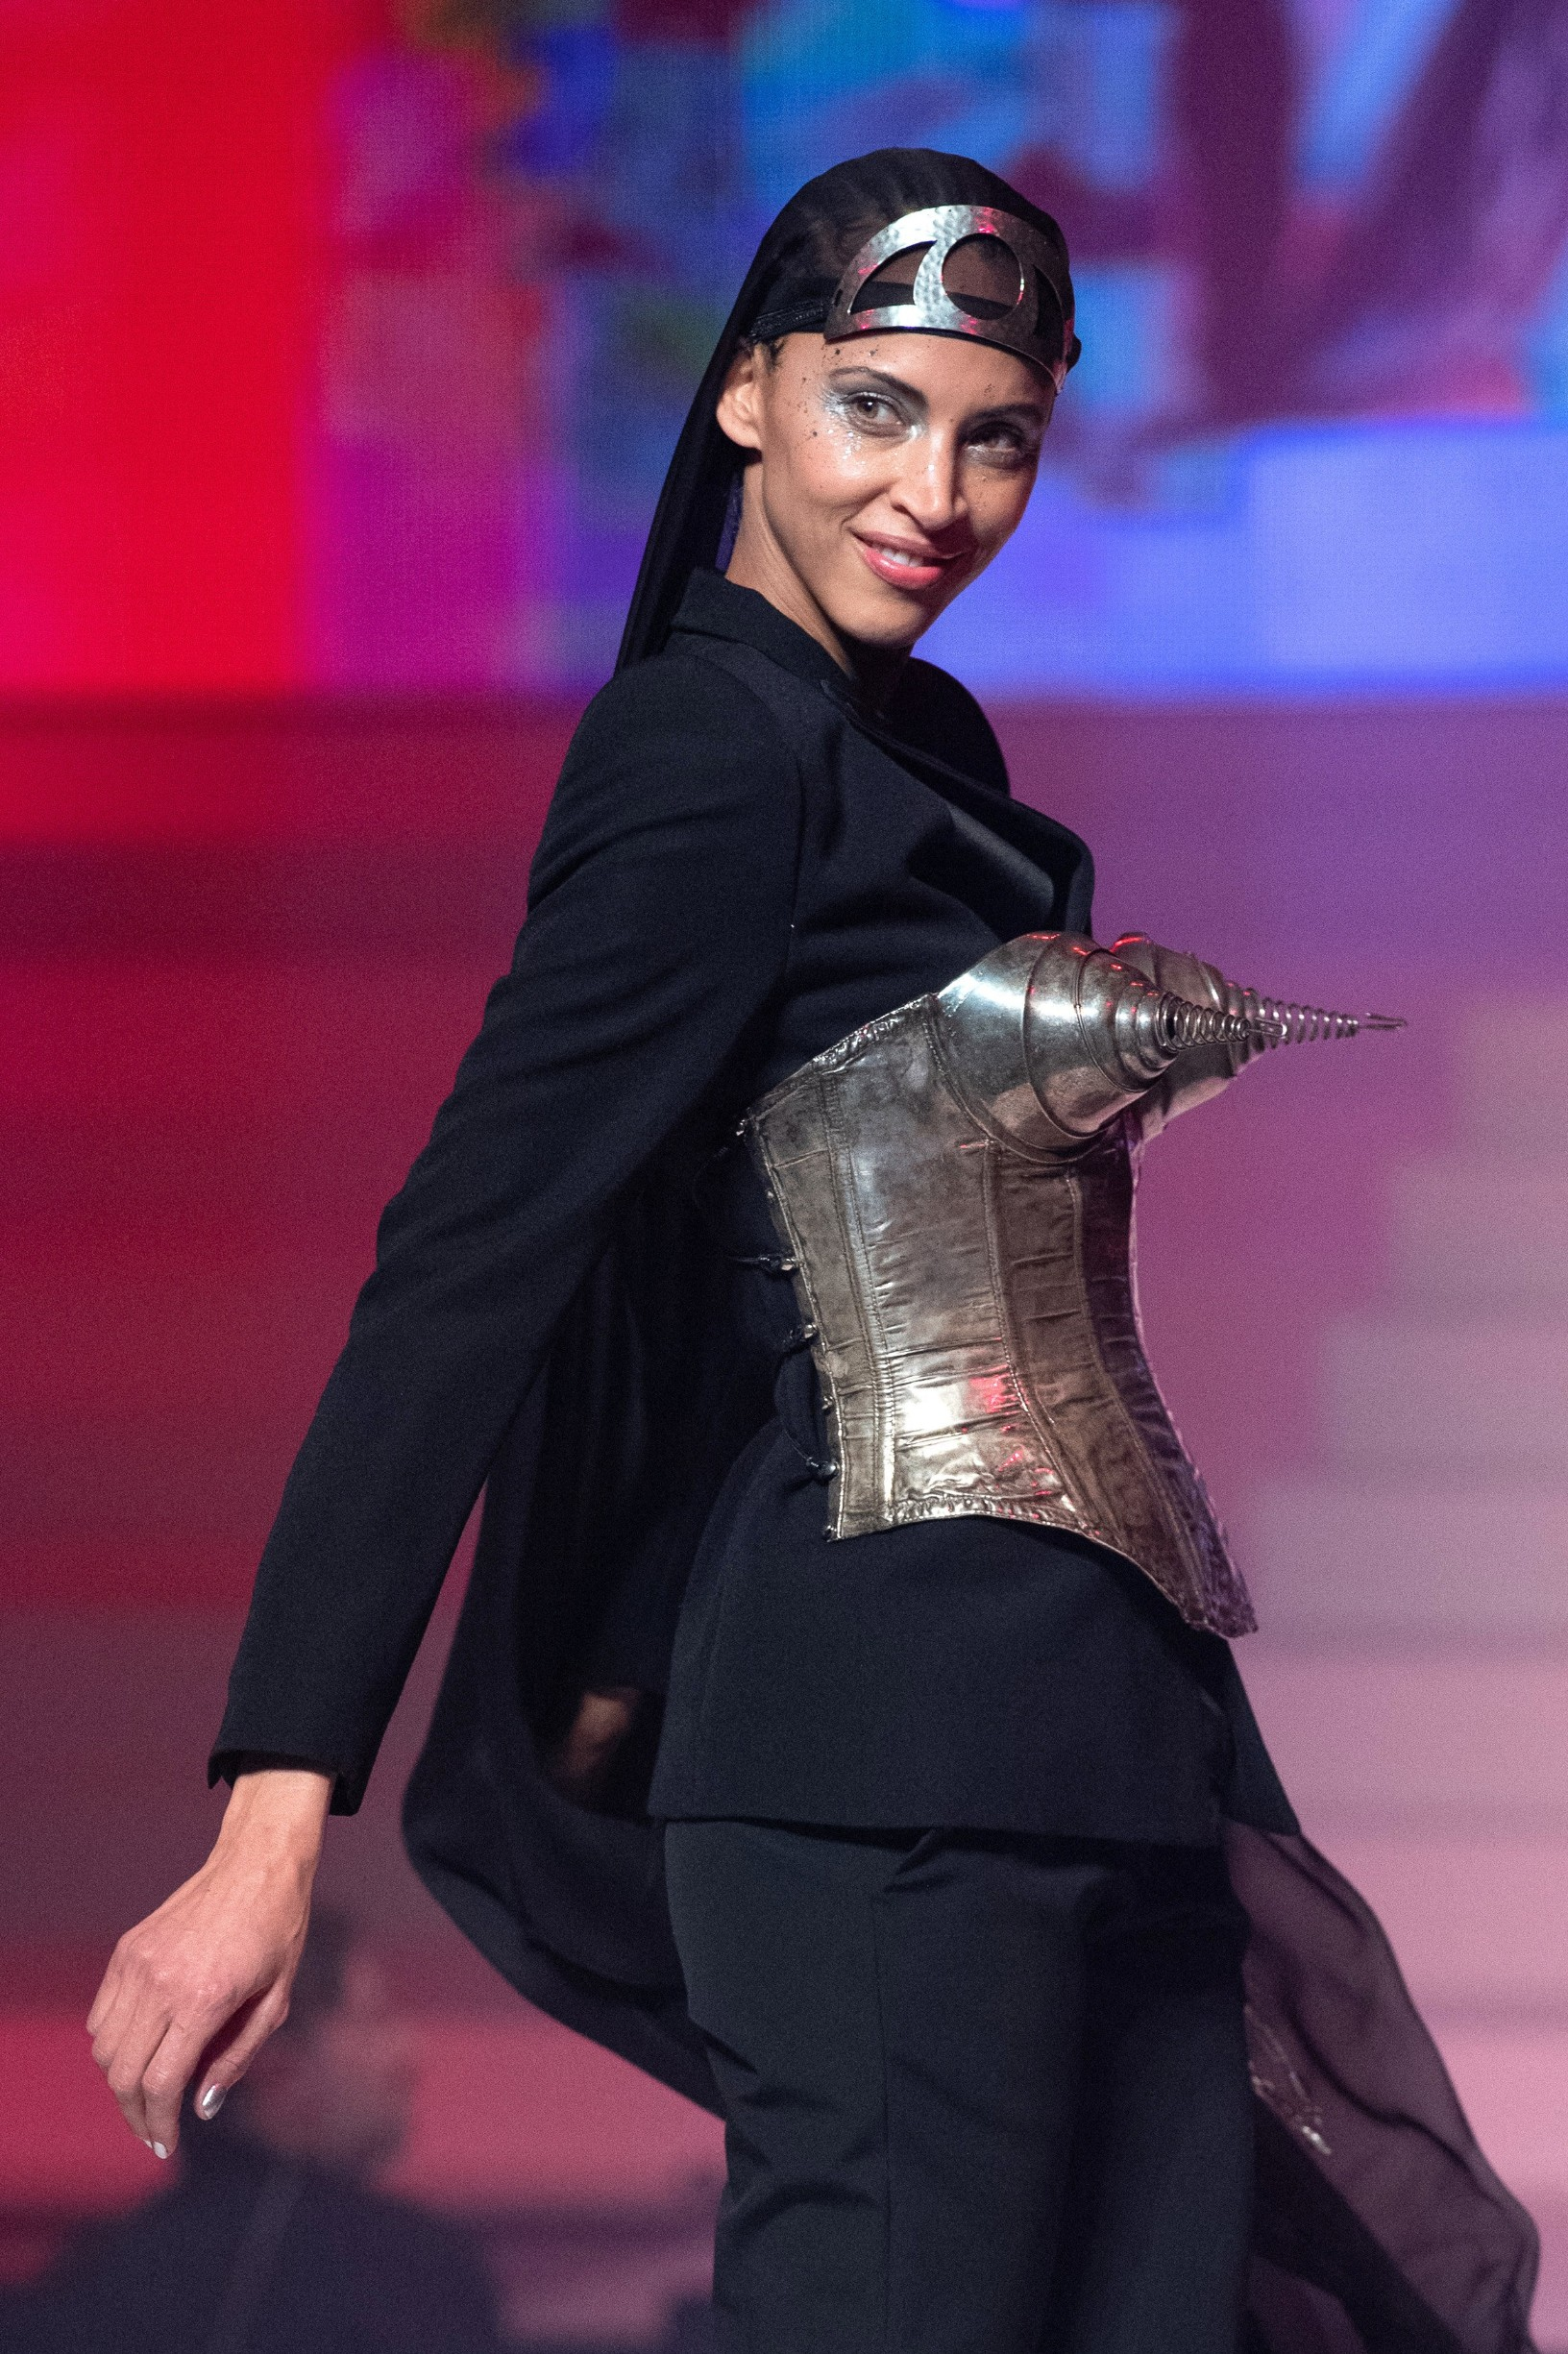 Noemie Lenoir walks the runway during the last Jean-Paul Gaultier Haute Couture Spring/Summer 2020 show as part of Paris Fashion Week in Paris, France on January 22, 2020., Image: 494341927, License: Rights-managed, Restrictions: , Model Release: no, Credit line: Marechal Aurore/ABACA / Abaca Press / Profimedia